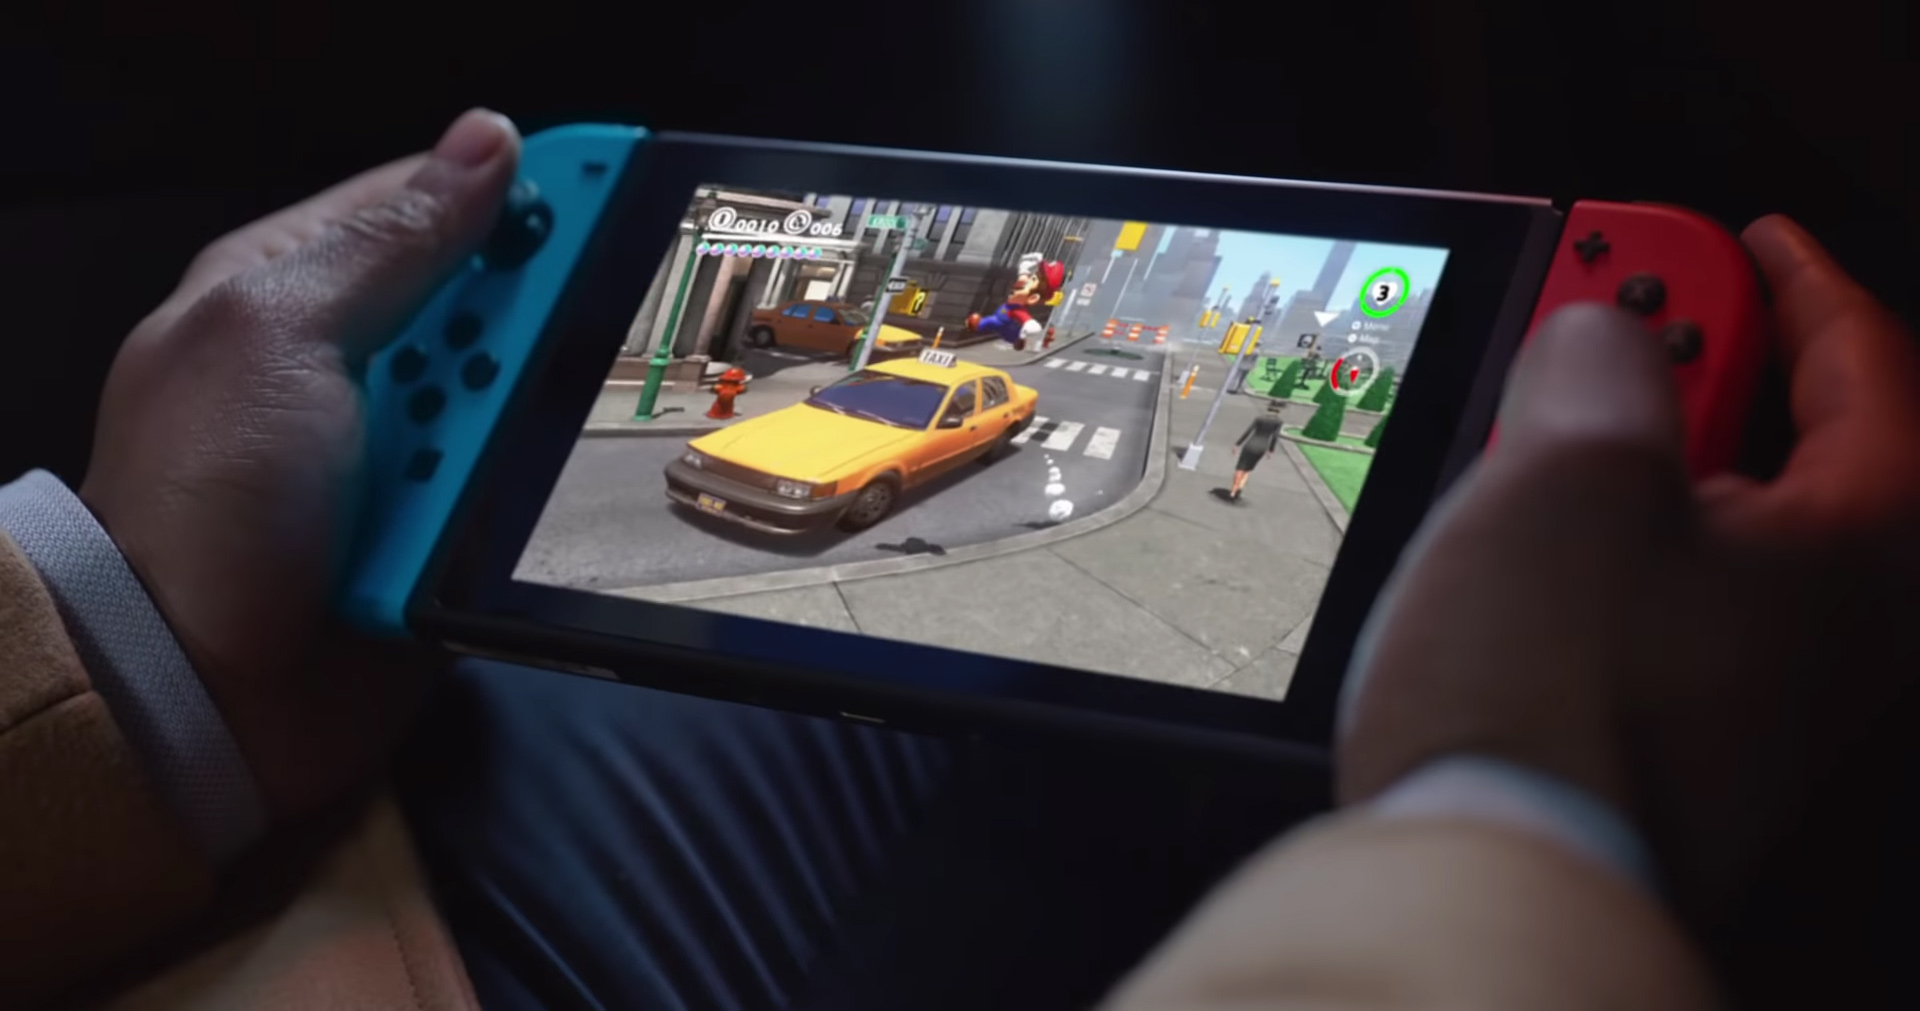 Nintendo reportedly cooking up two new Switch models